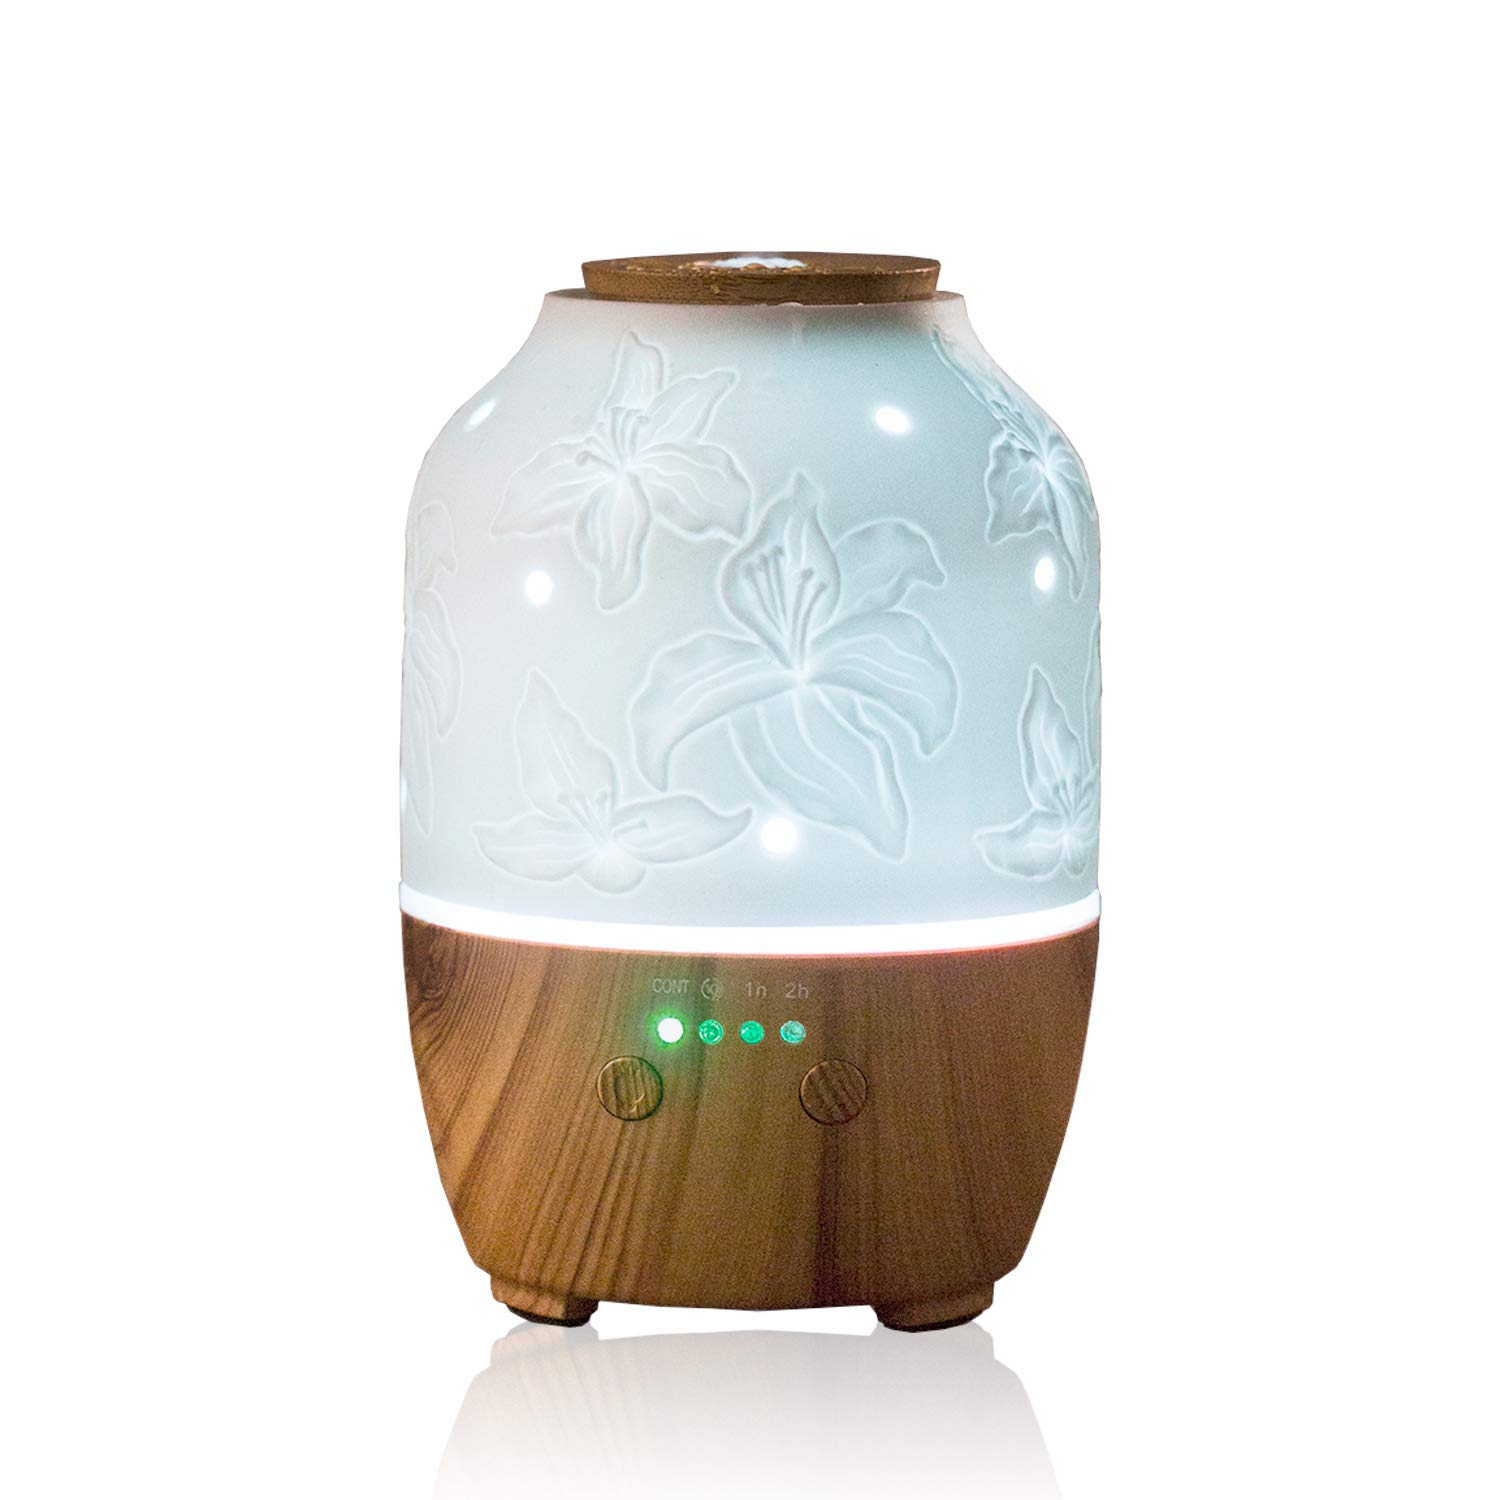 Essential Oil Diffuser, 150 ml White Ceramic Diffuser Wood Grain Diffusers for Essential Oils with Night Lights and Timers Aromatherapy Diffuser (Lily)